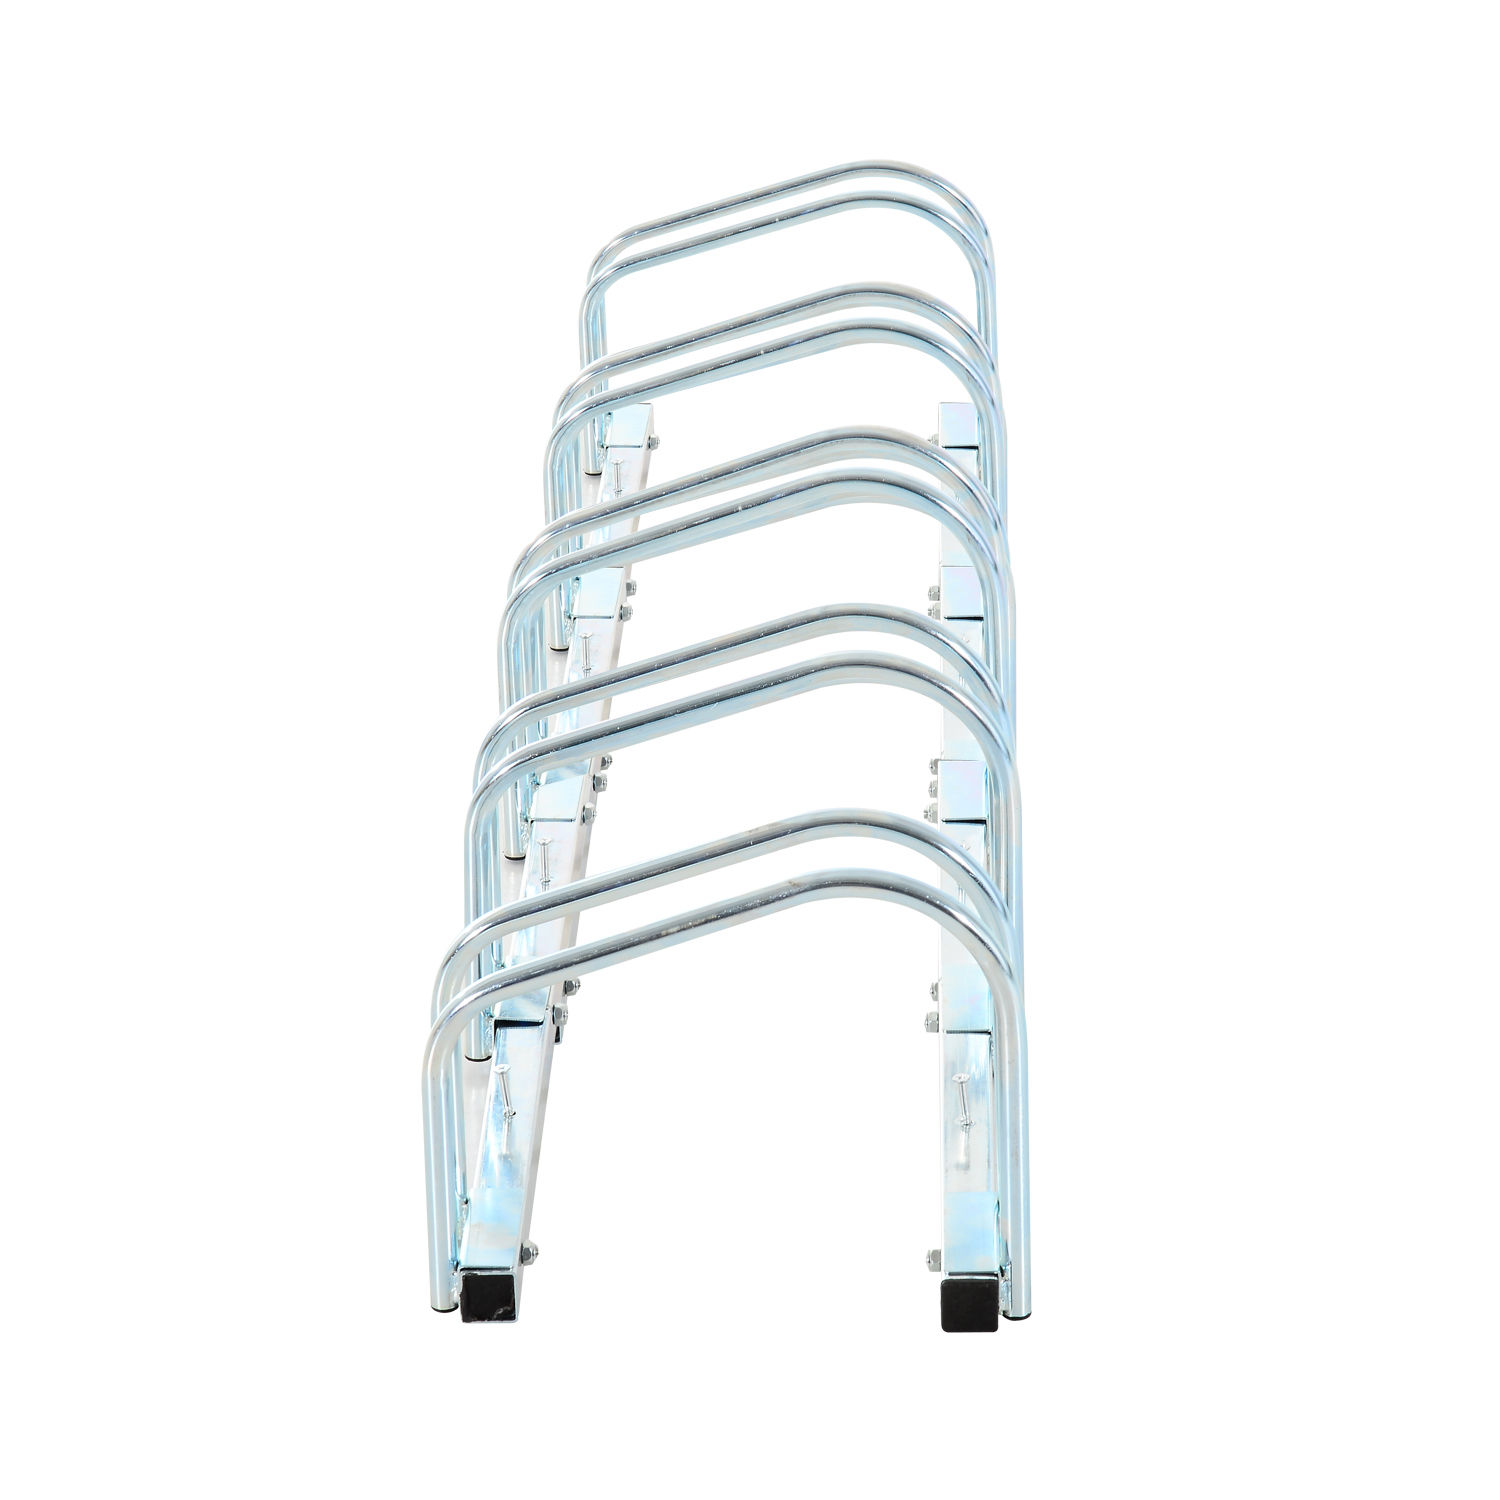 Bicycle-Bike-Parking-Cycle-Floor-Rack-Stand-Storage-Mount-Holder-Steel-Pipe miniatura 22